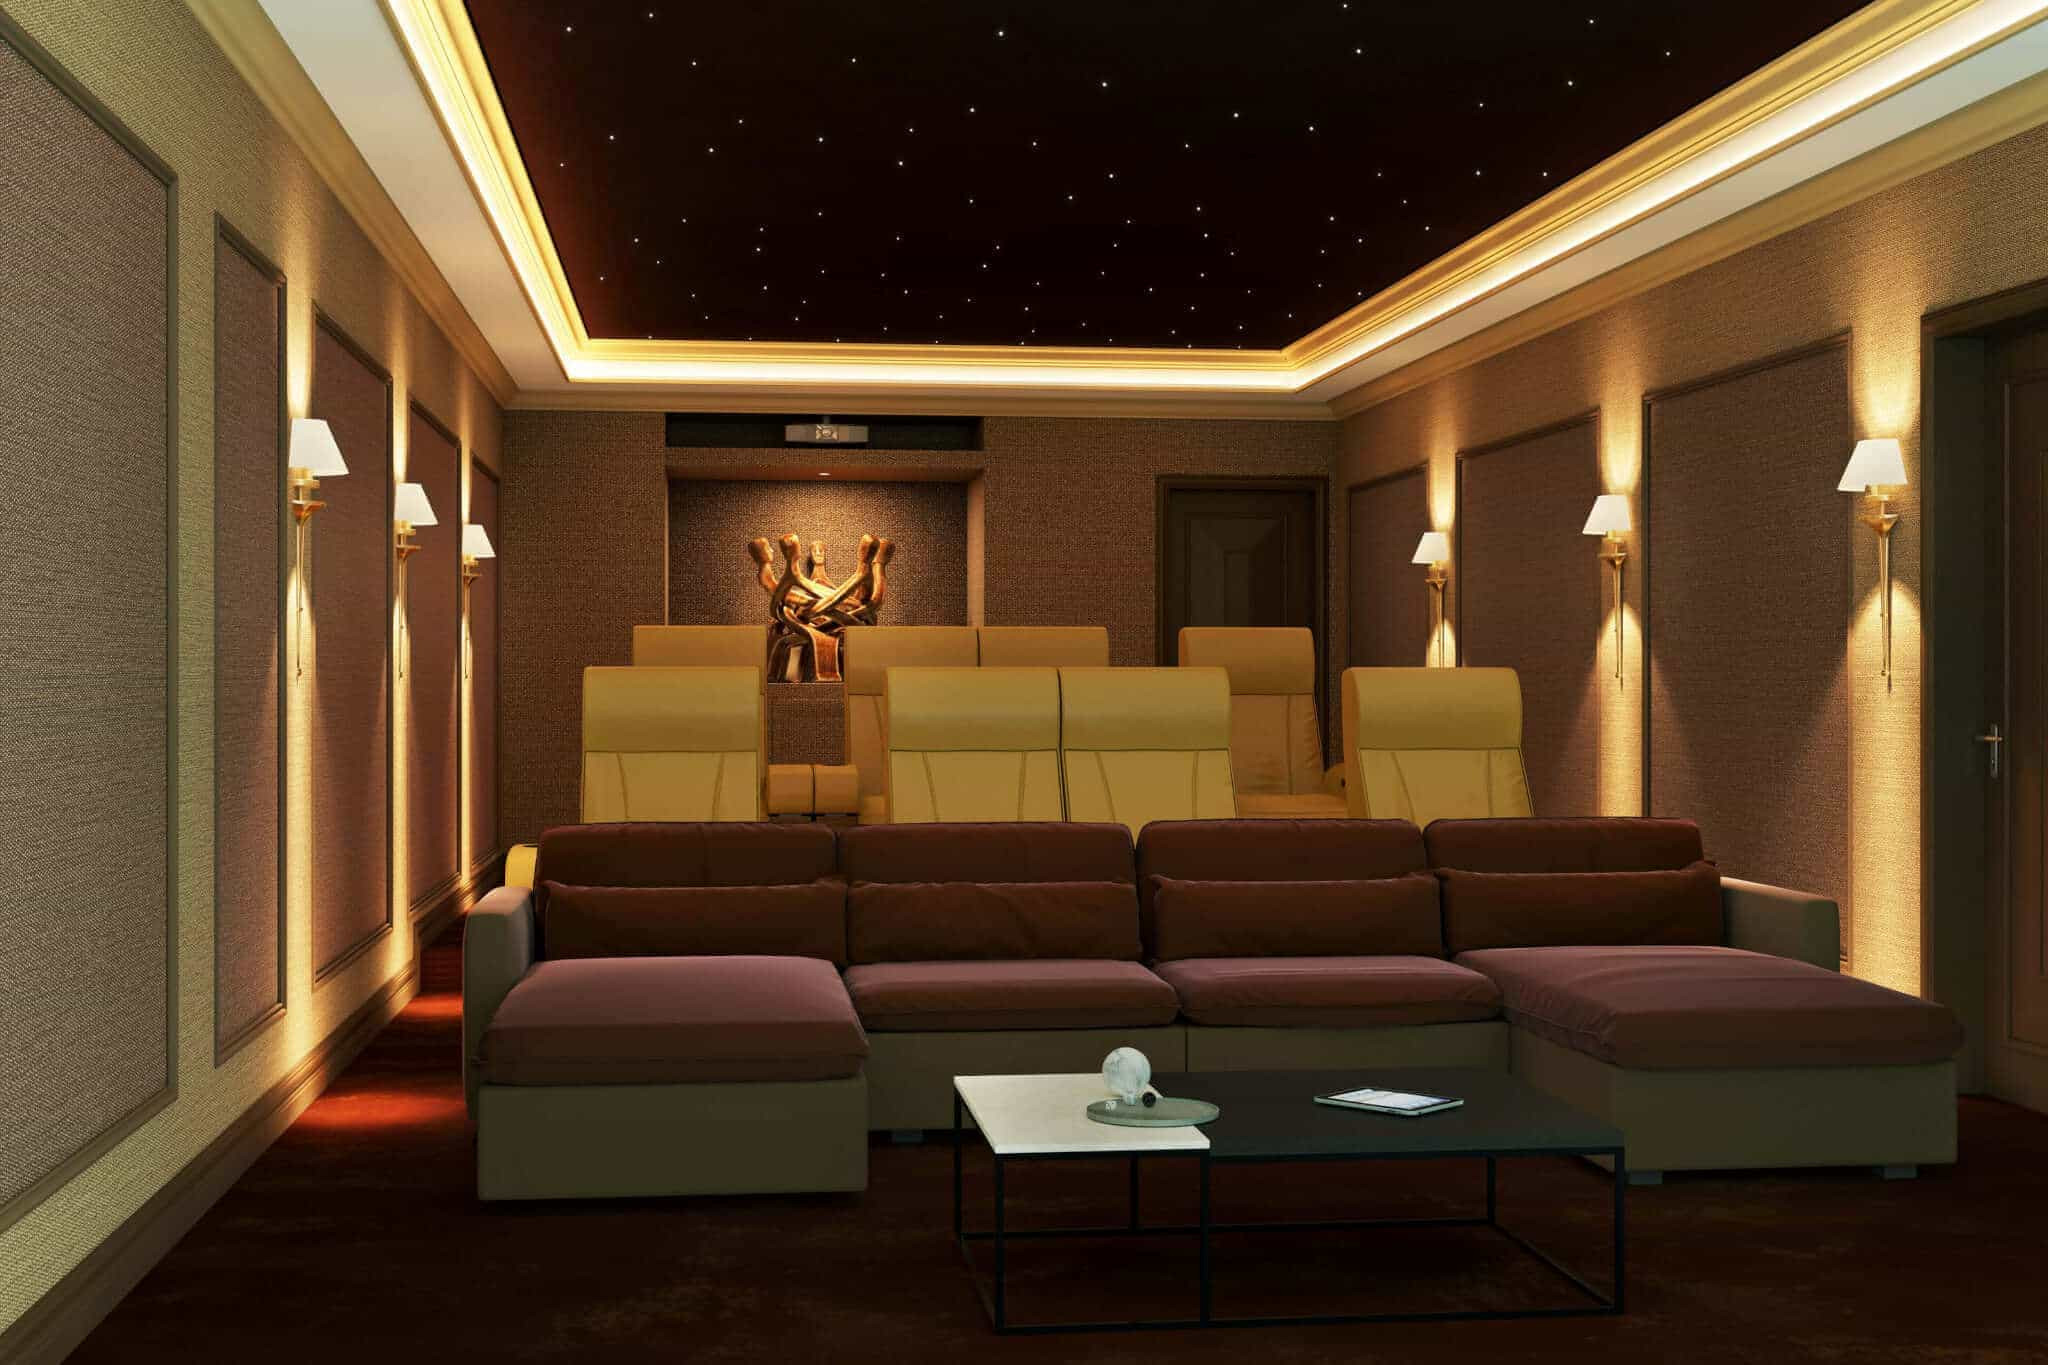 Home Cinema Designs What are the Best Type Of Lights to Use In A Home Cinema